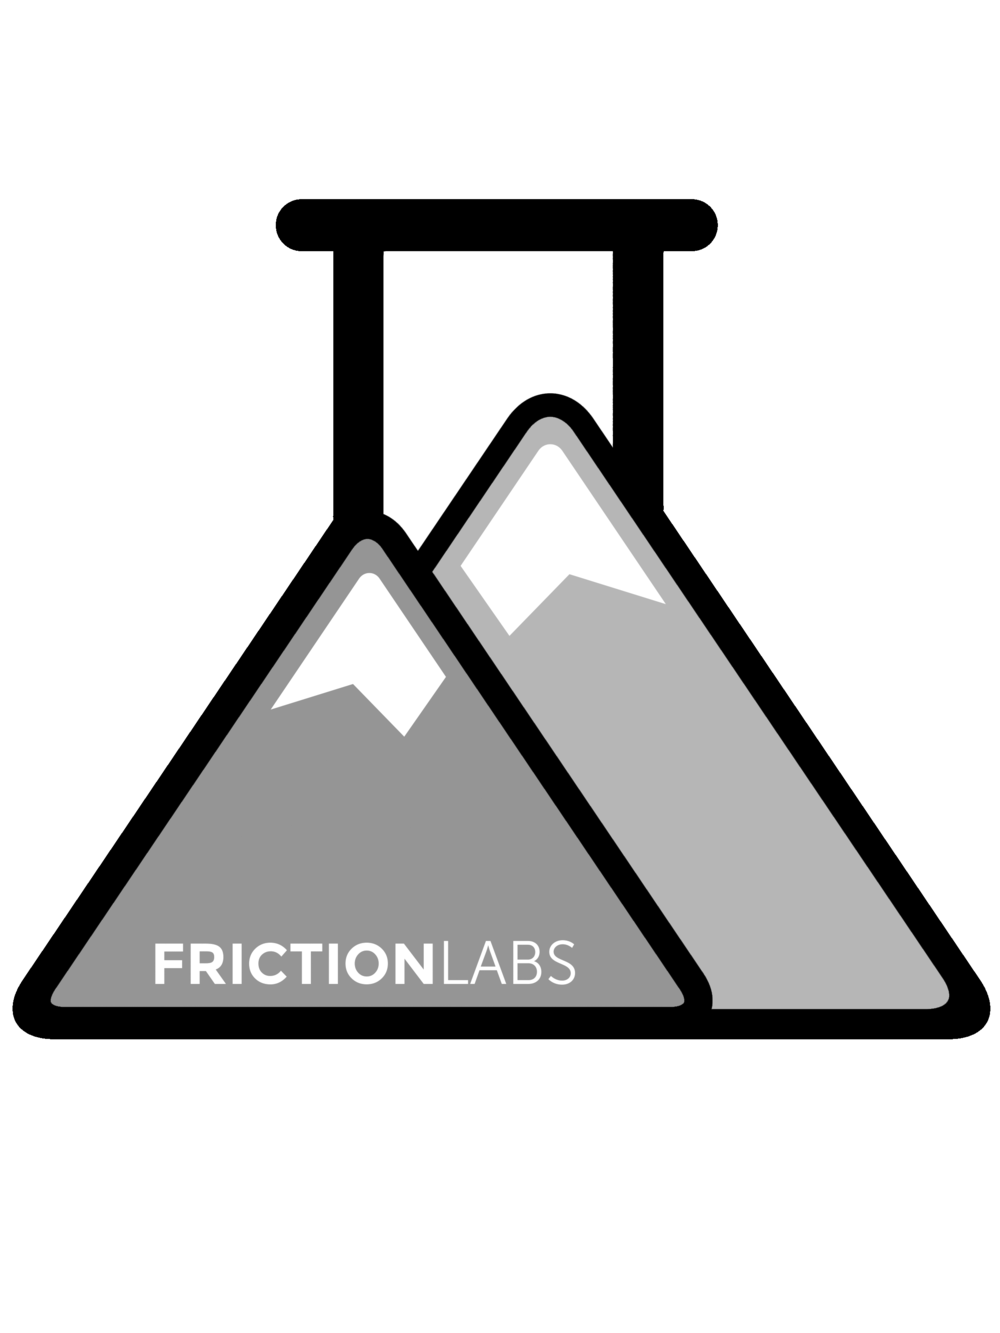 FrictionLabs Sticker Grayscale.png